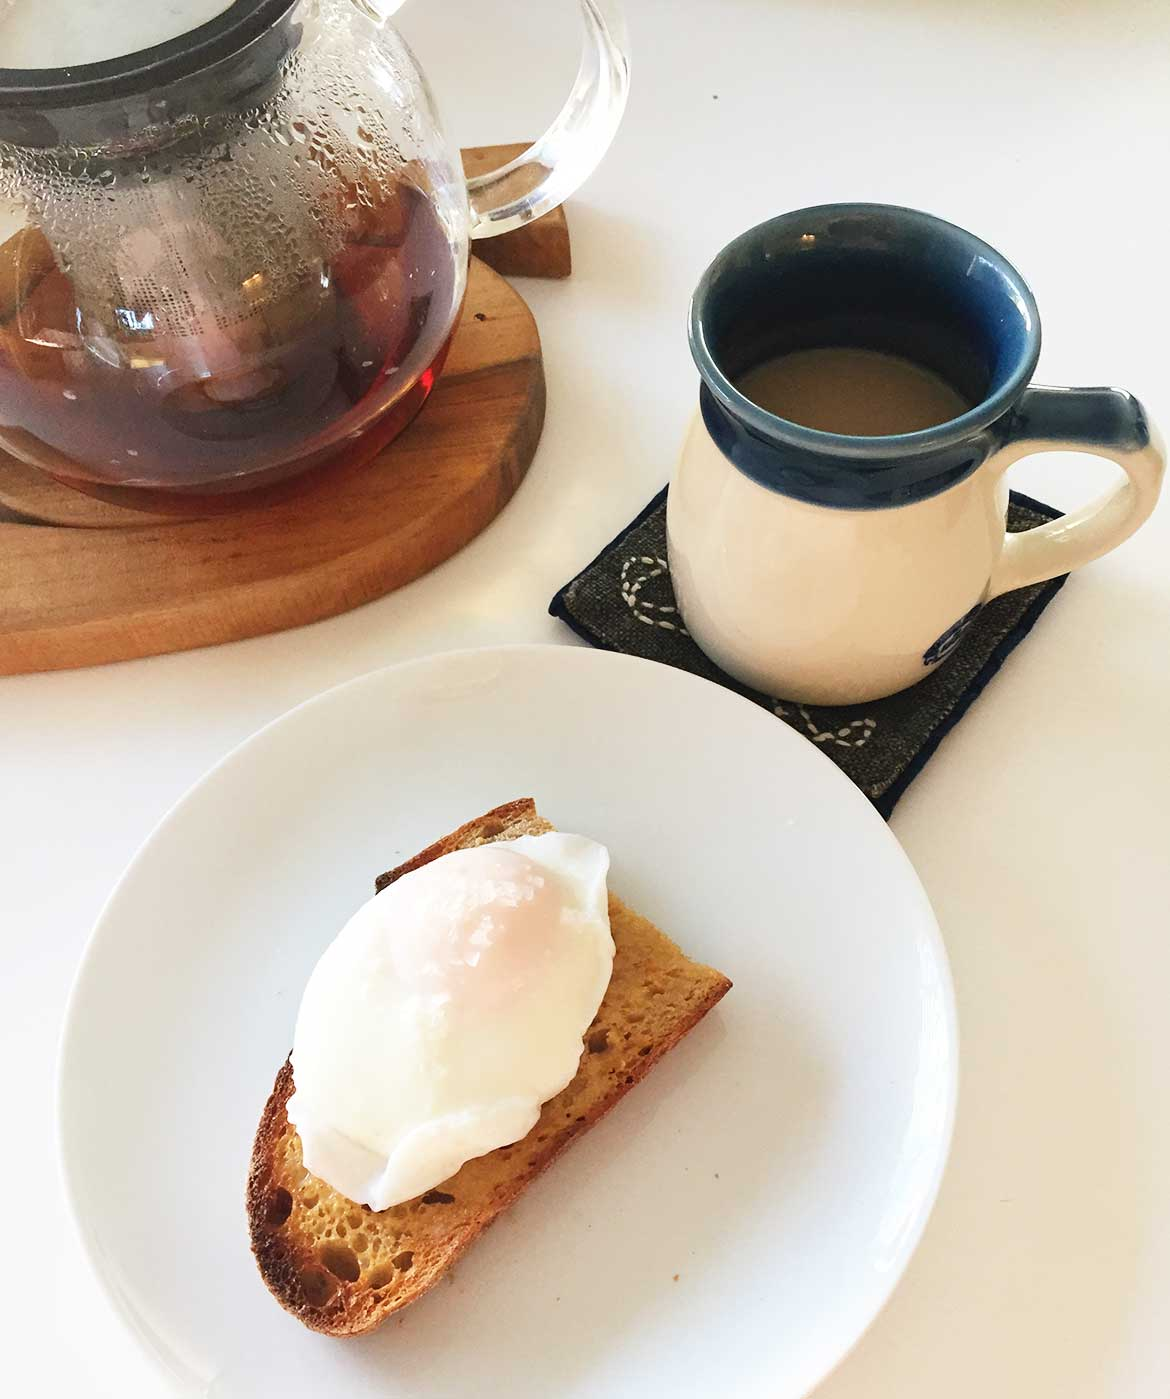 Low GI Breakfast - Living with gestational diabetes, I like to have homemade sourdough and a poached egg for breakfast.